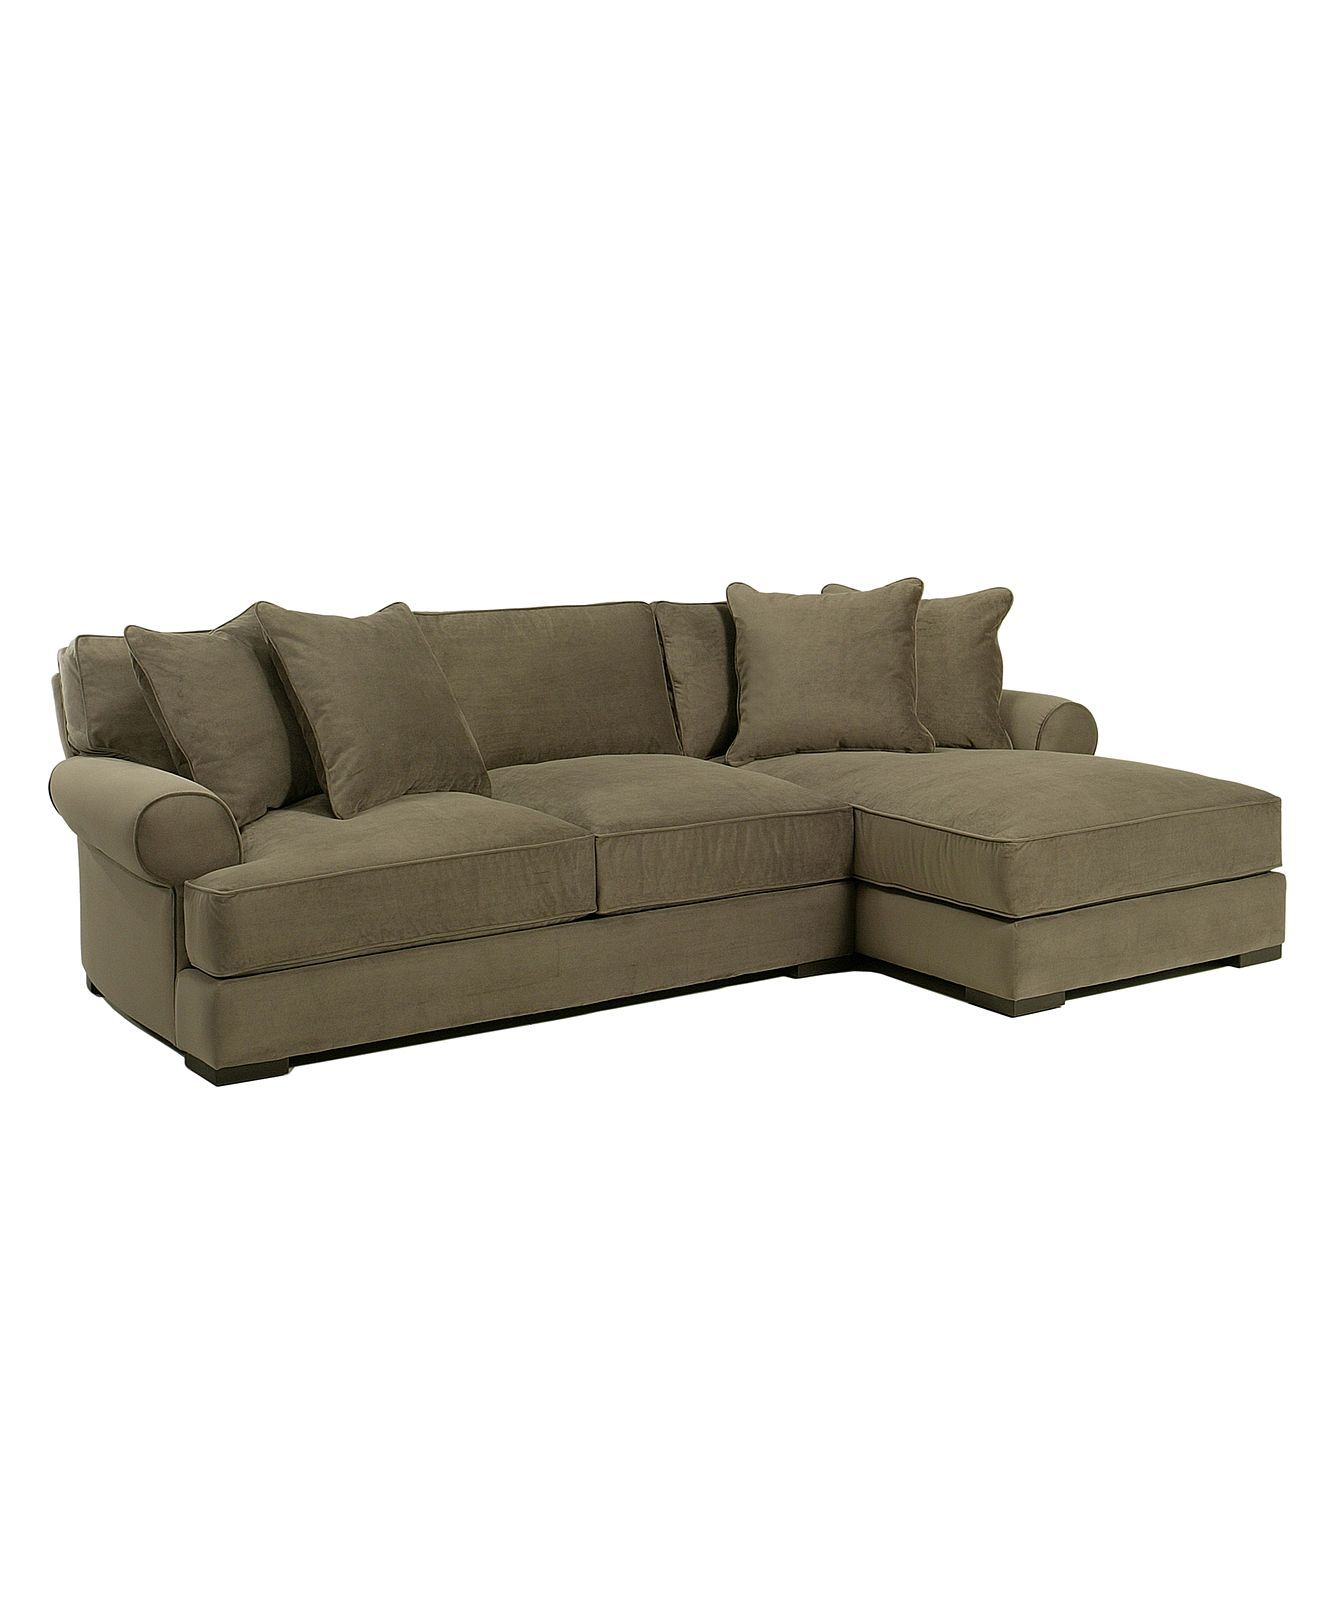 Mattie Sectional Sofa, 2 Piece (Apartment Sofa and Chaise ...